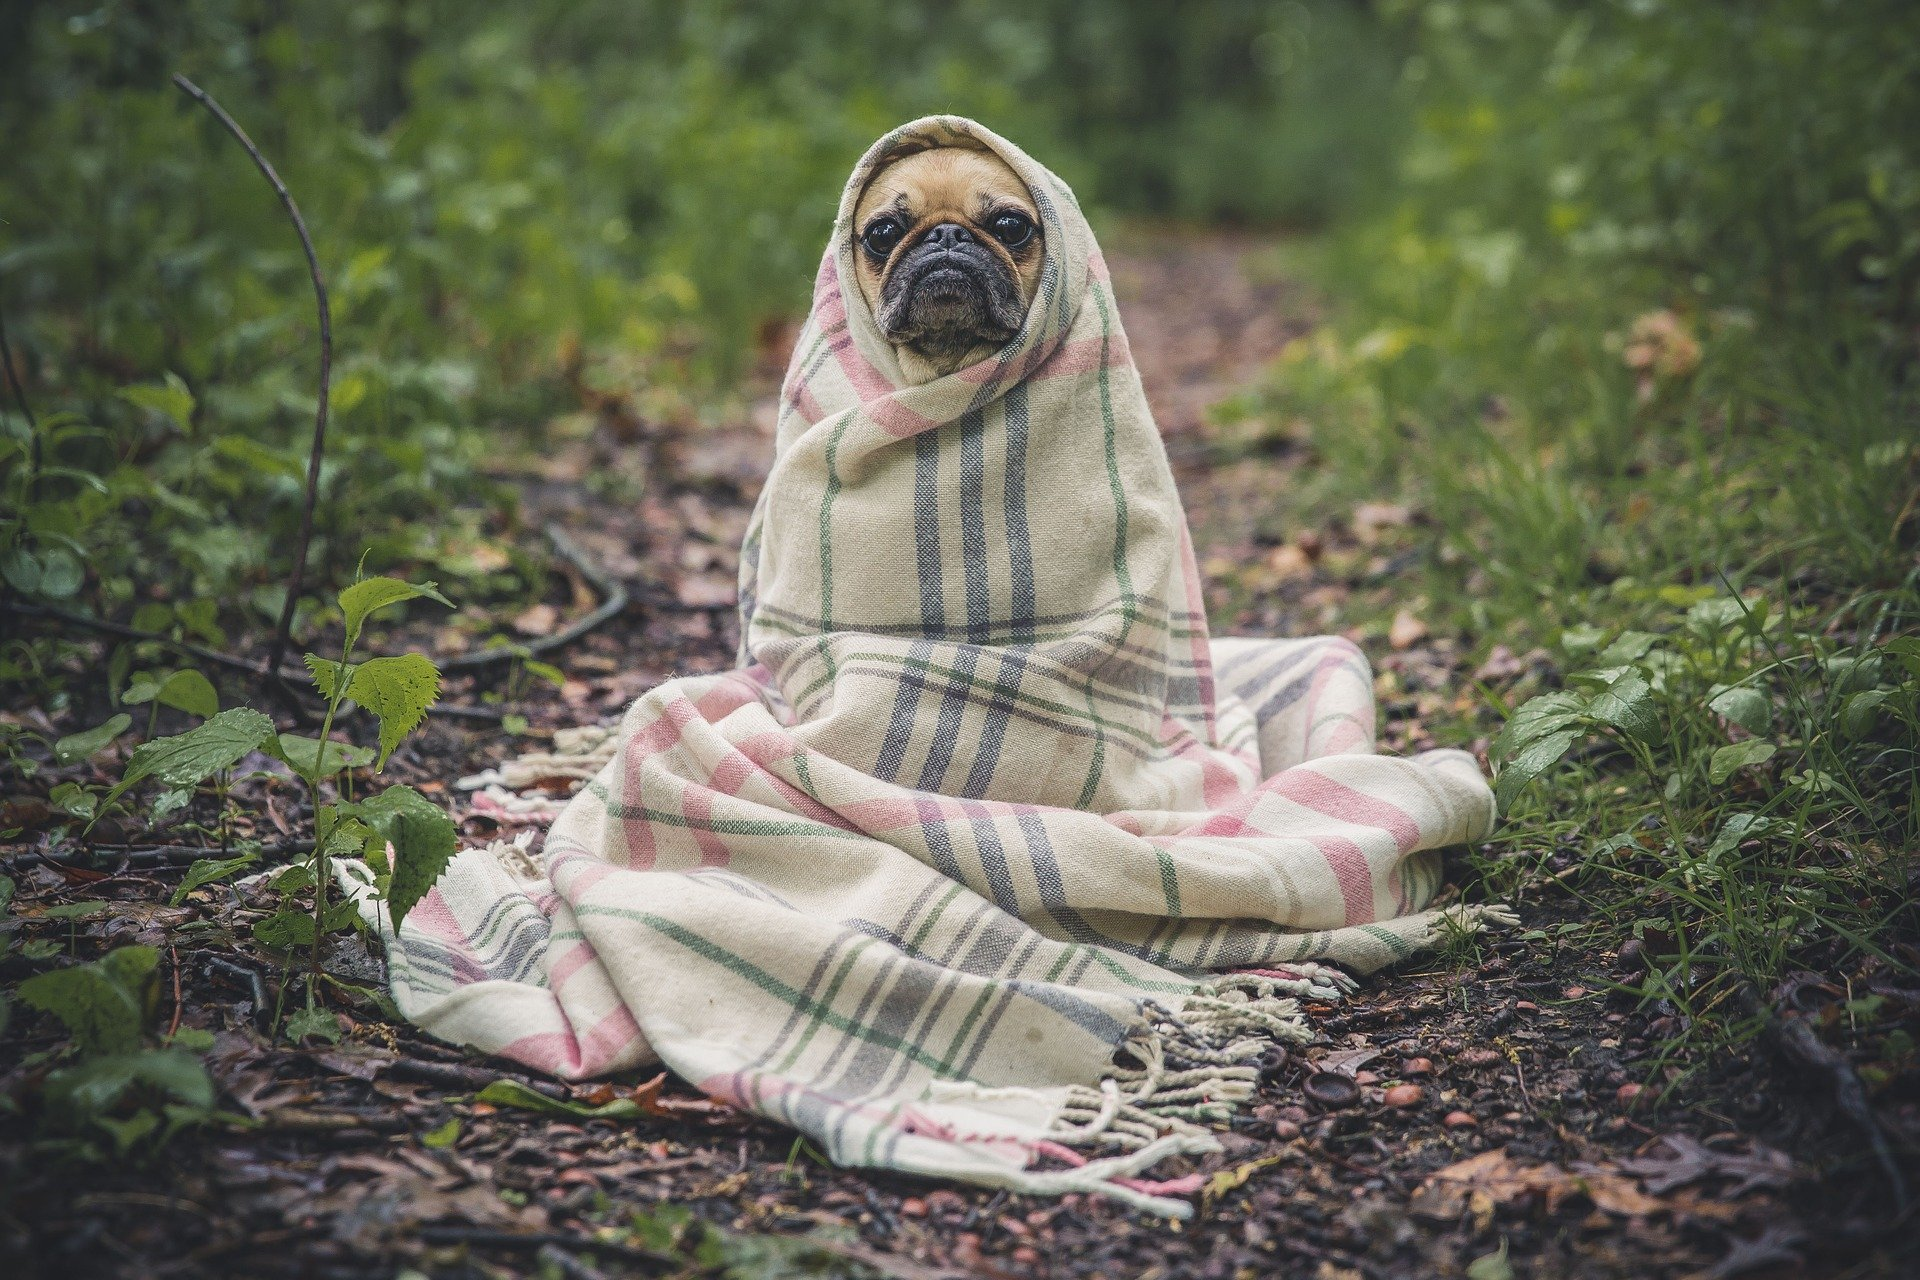 A Pug Dog cosily wrapped in a blanket.   Source: Pixabay.